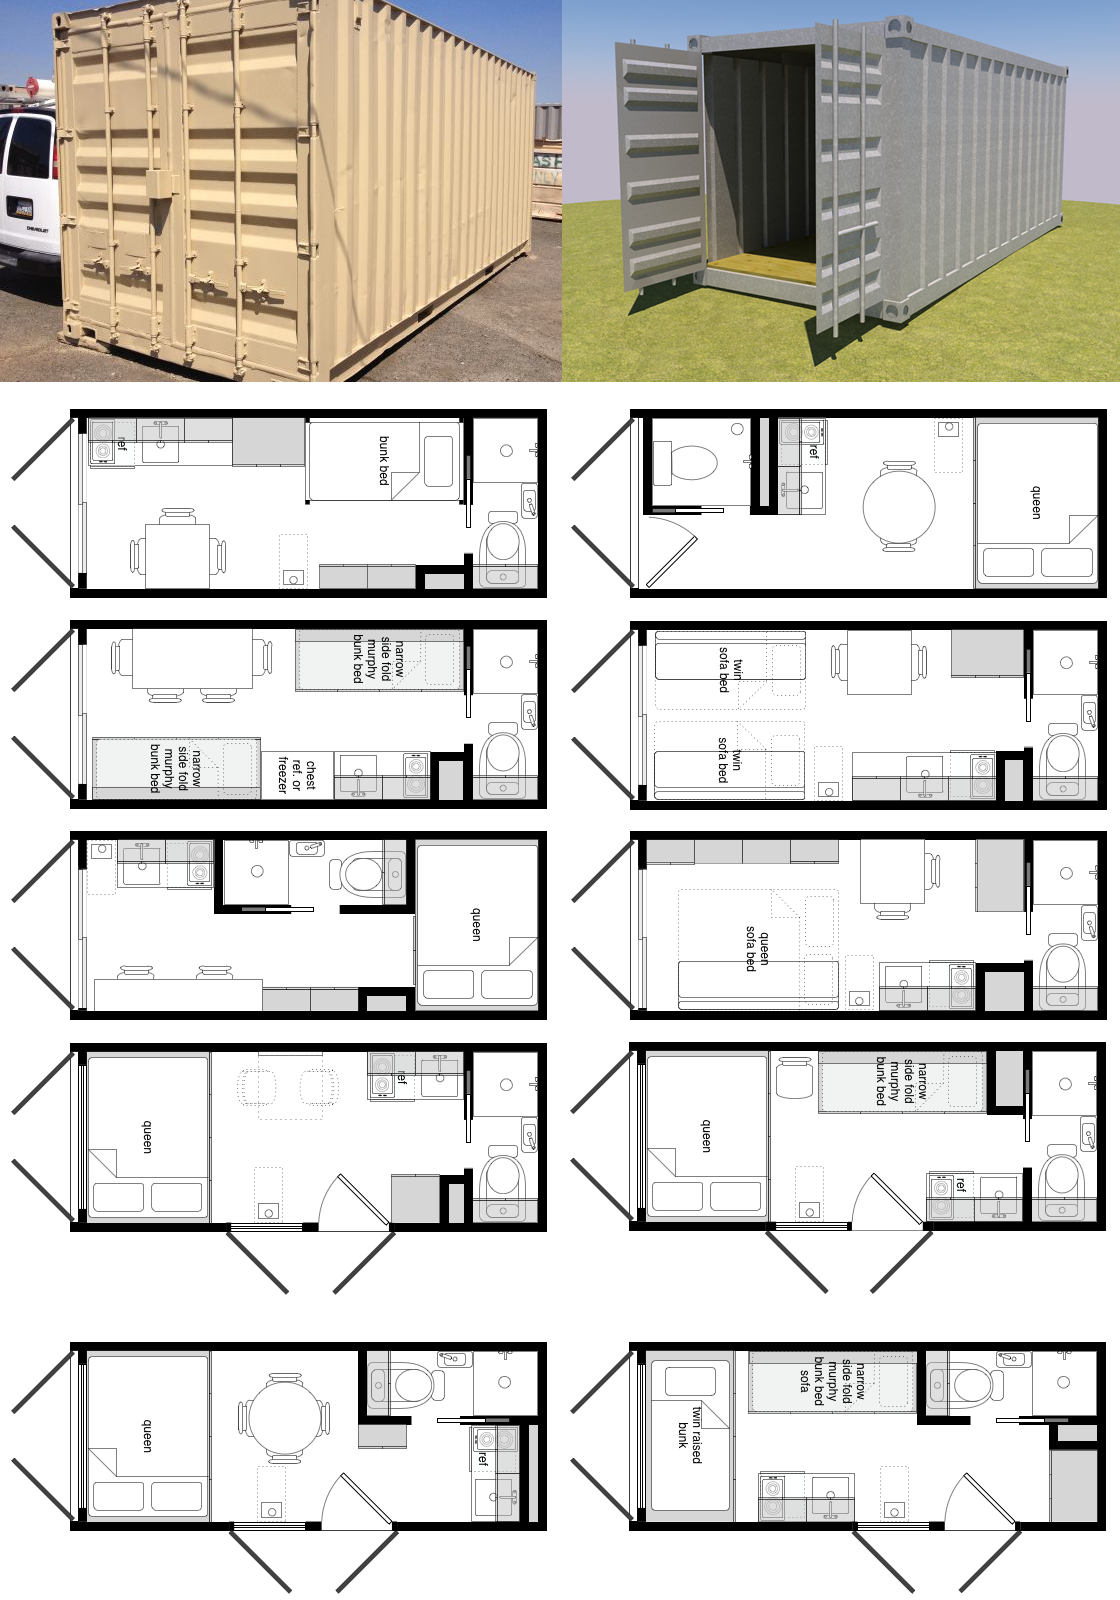 Shipping Container Home Floor Plans 20 Foot Shipping Container Floor Plan Brainstorm Shipping Container House Plans Building A Container Home Container House Plans